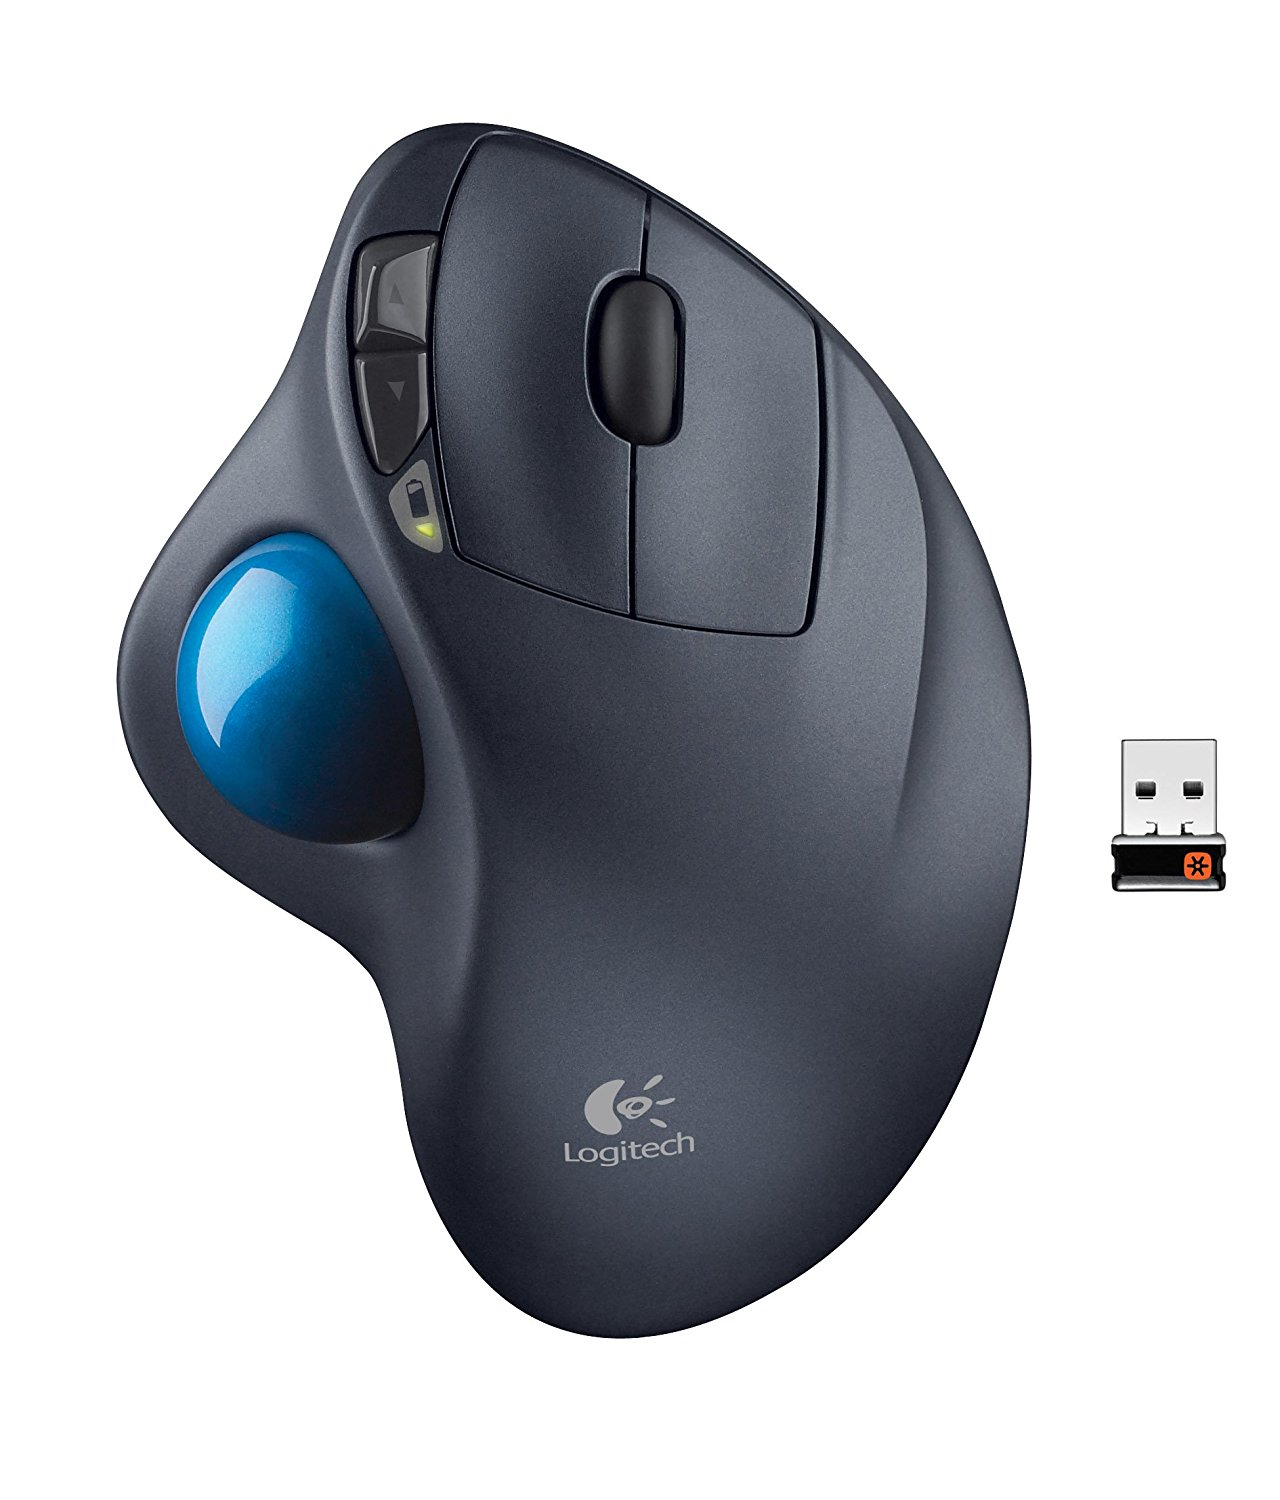 Logitech Trackball Maus amazon